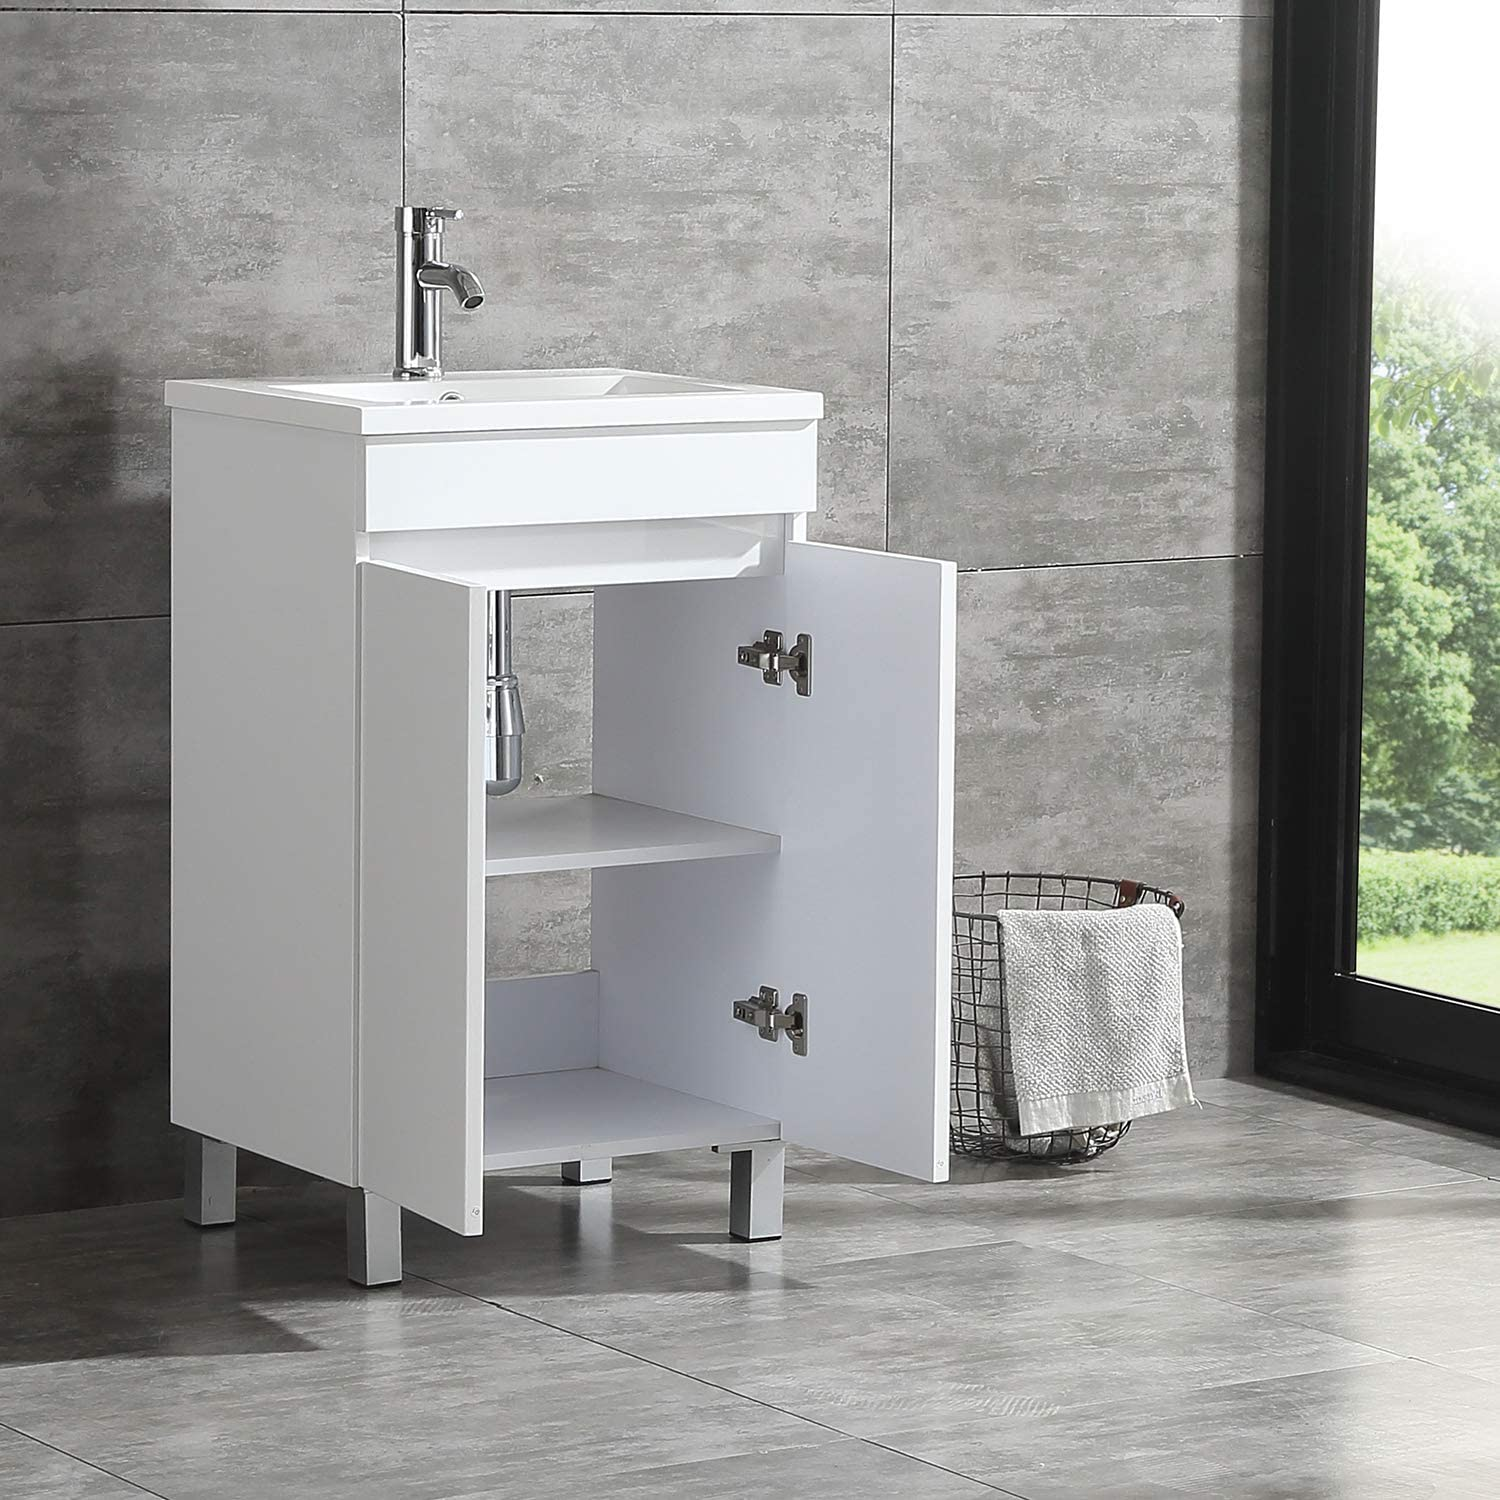 Sliverylake 20 Inch Free Standing Bathroom Vanity Cabinet With 2 Doors Undermount Resin Sink And Chrome Faucet Combo White Amazon Com